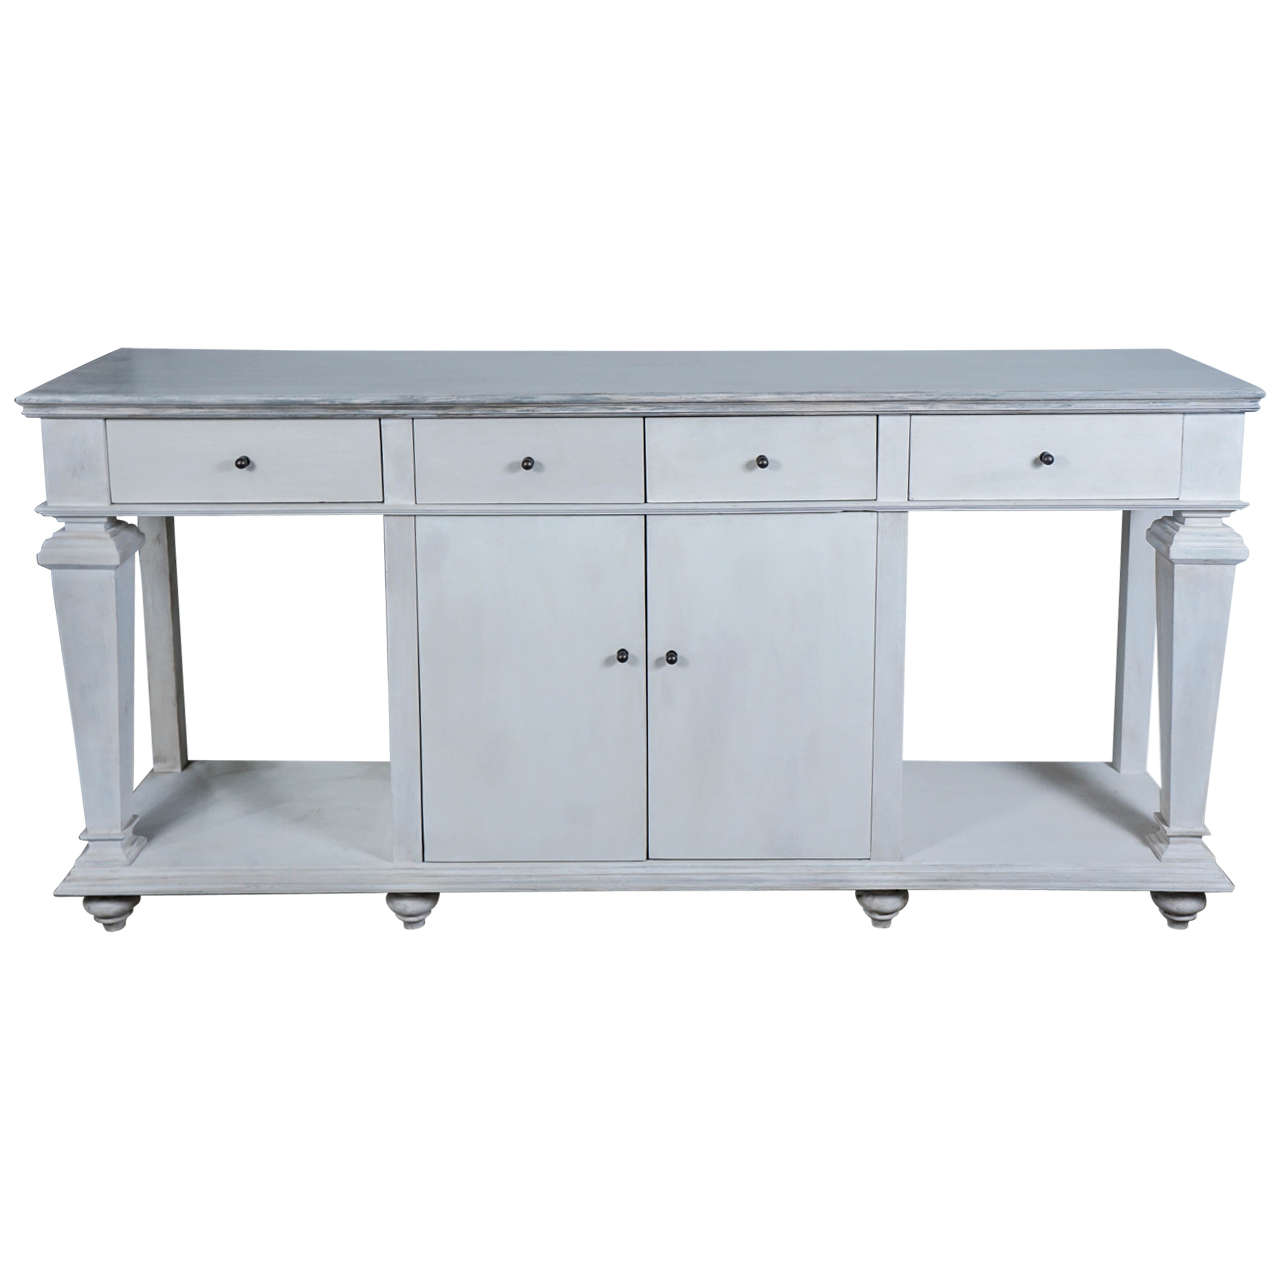 Contemporary Painted Sideboard or Server